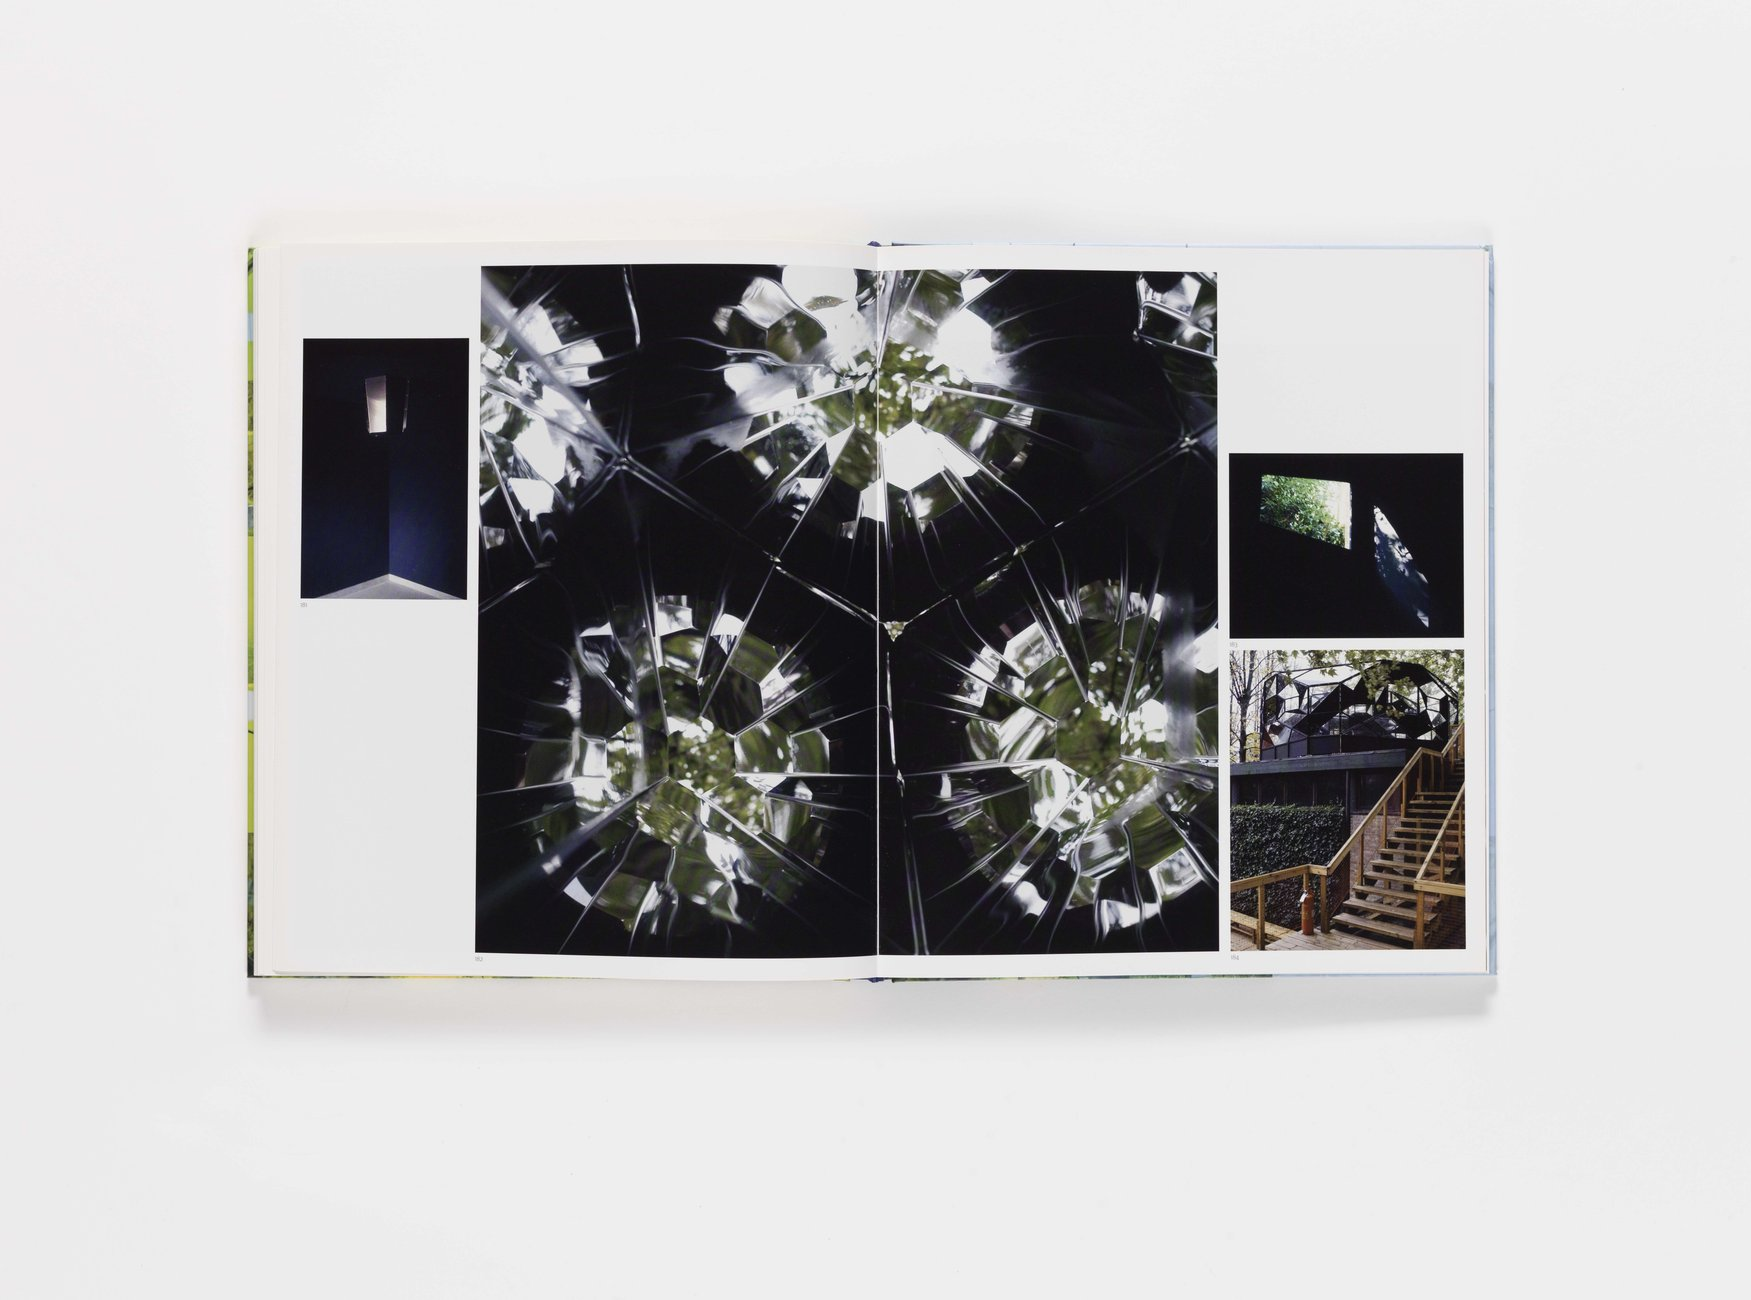 Take Your Time: Olafur Eliasson publication plates 181-184